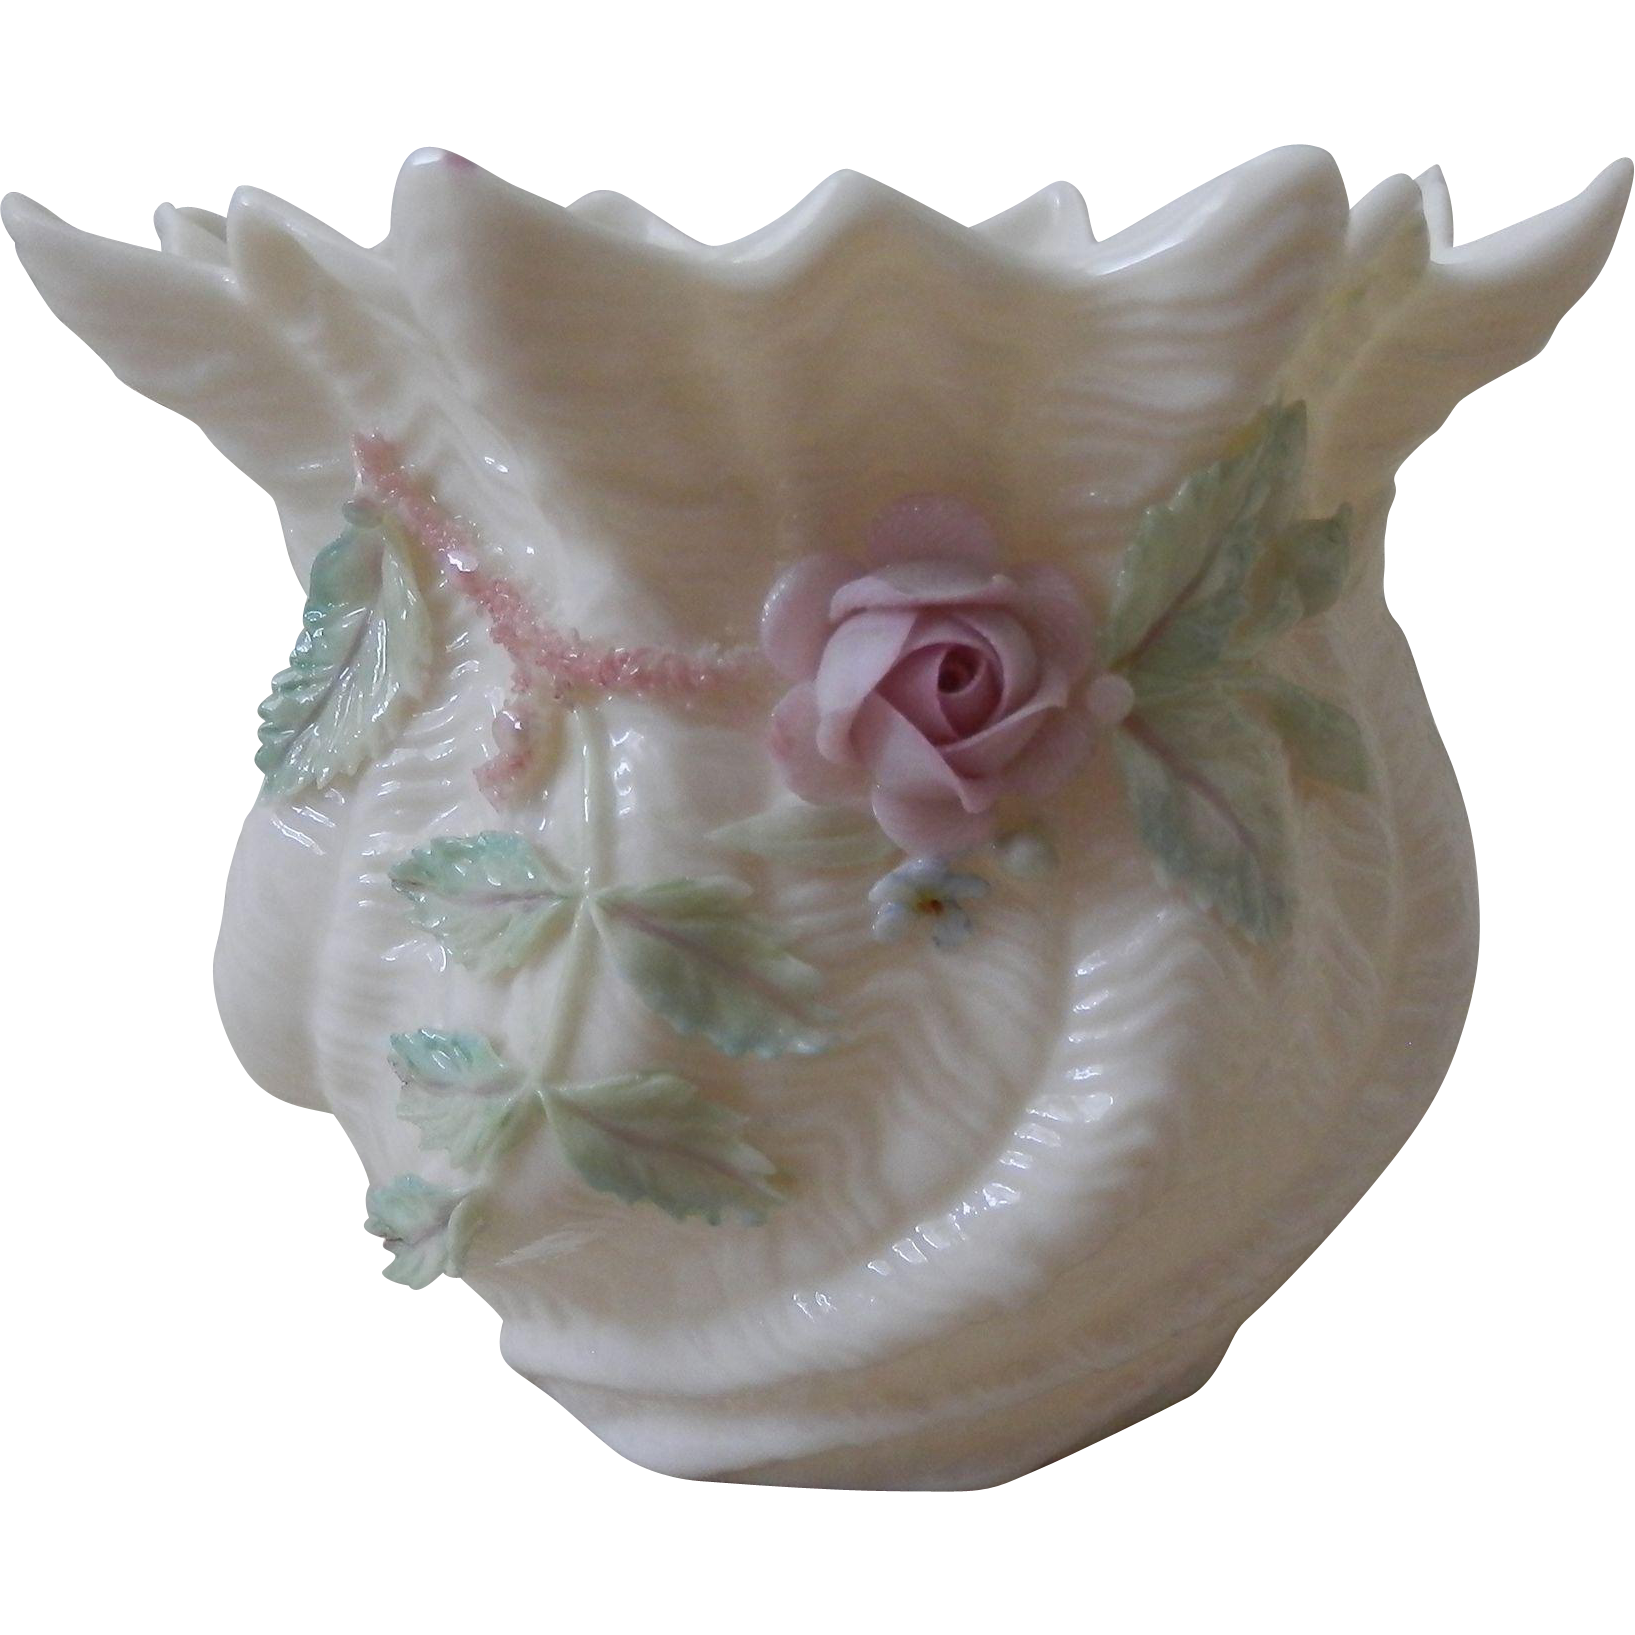 Irish Belleek Fine Parian China - Shell Pattern Flower Pot or Votive Holder with Roses and Shamrocks - Fifth Mark, 1955 - 1965